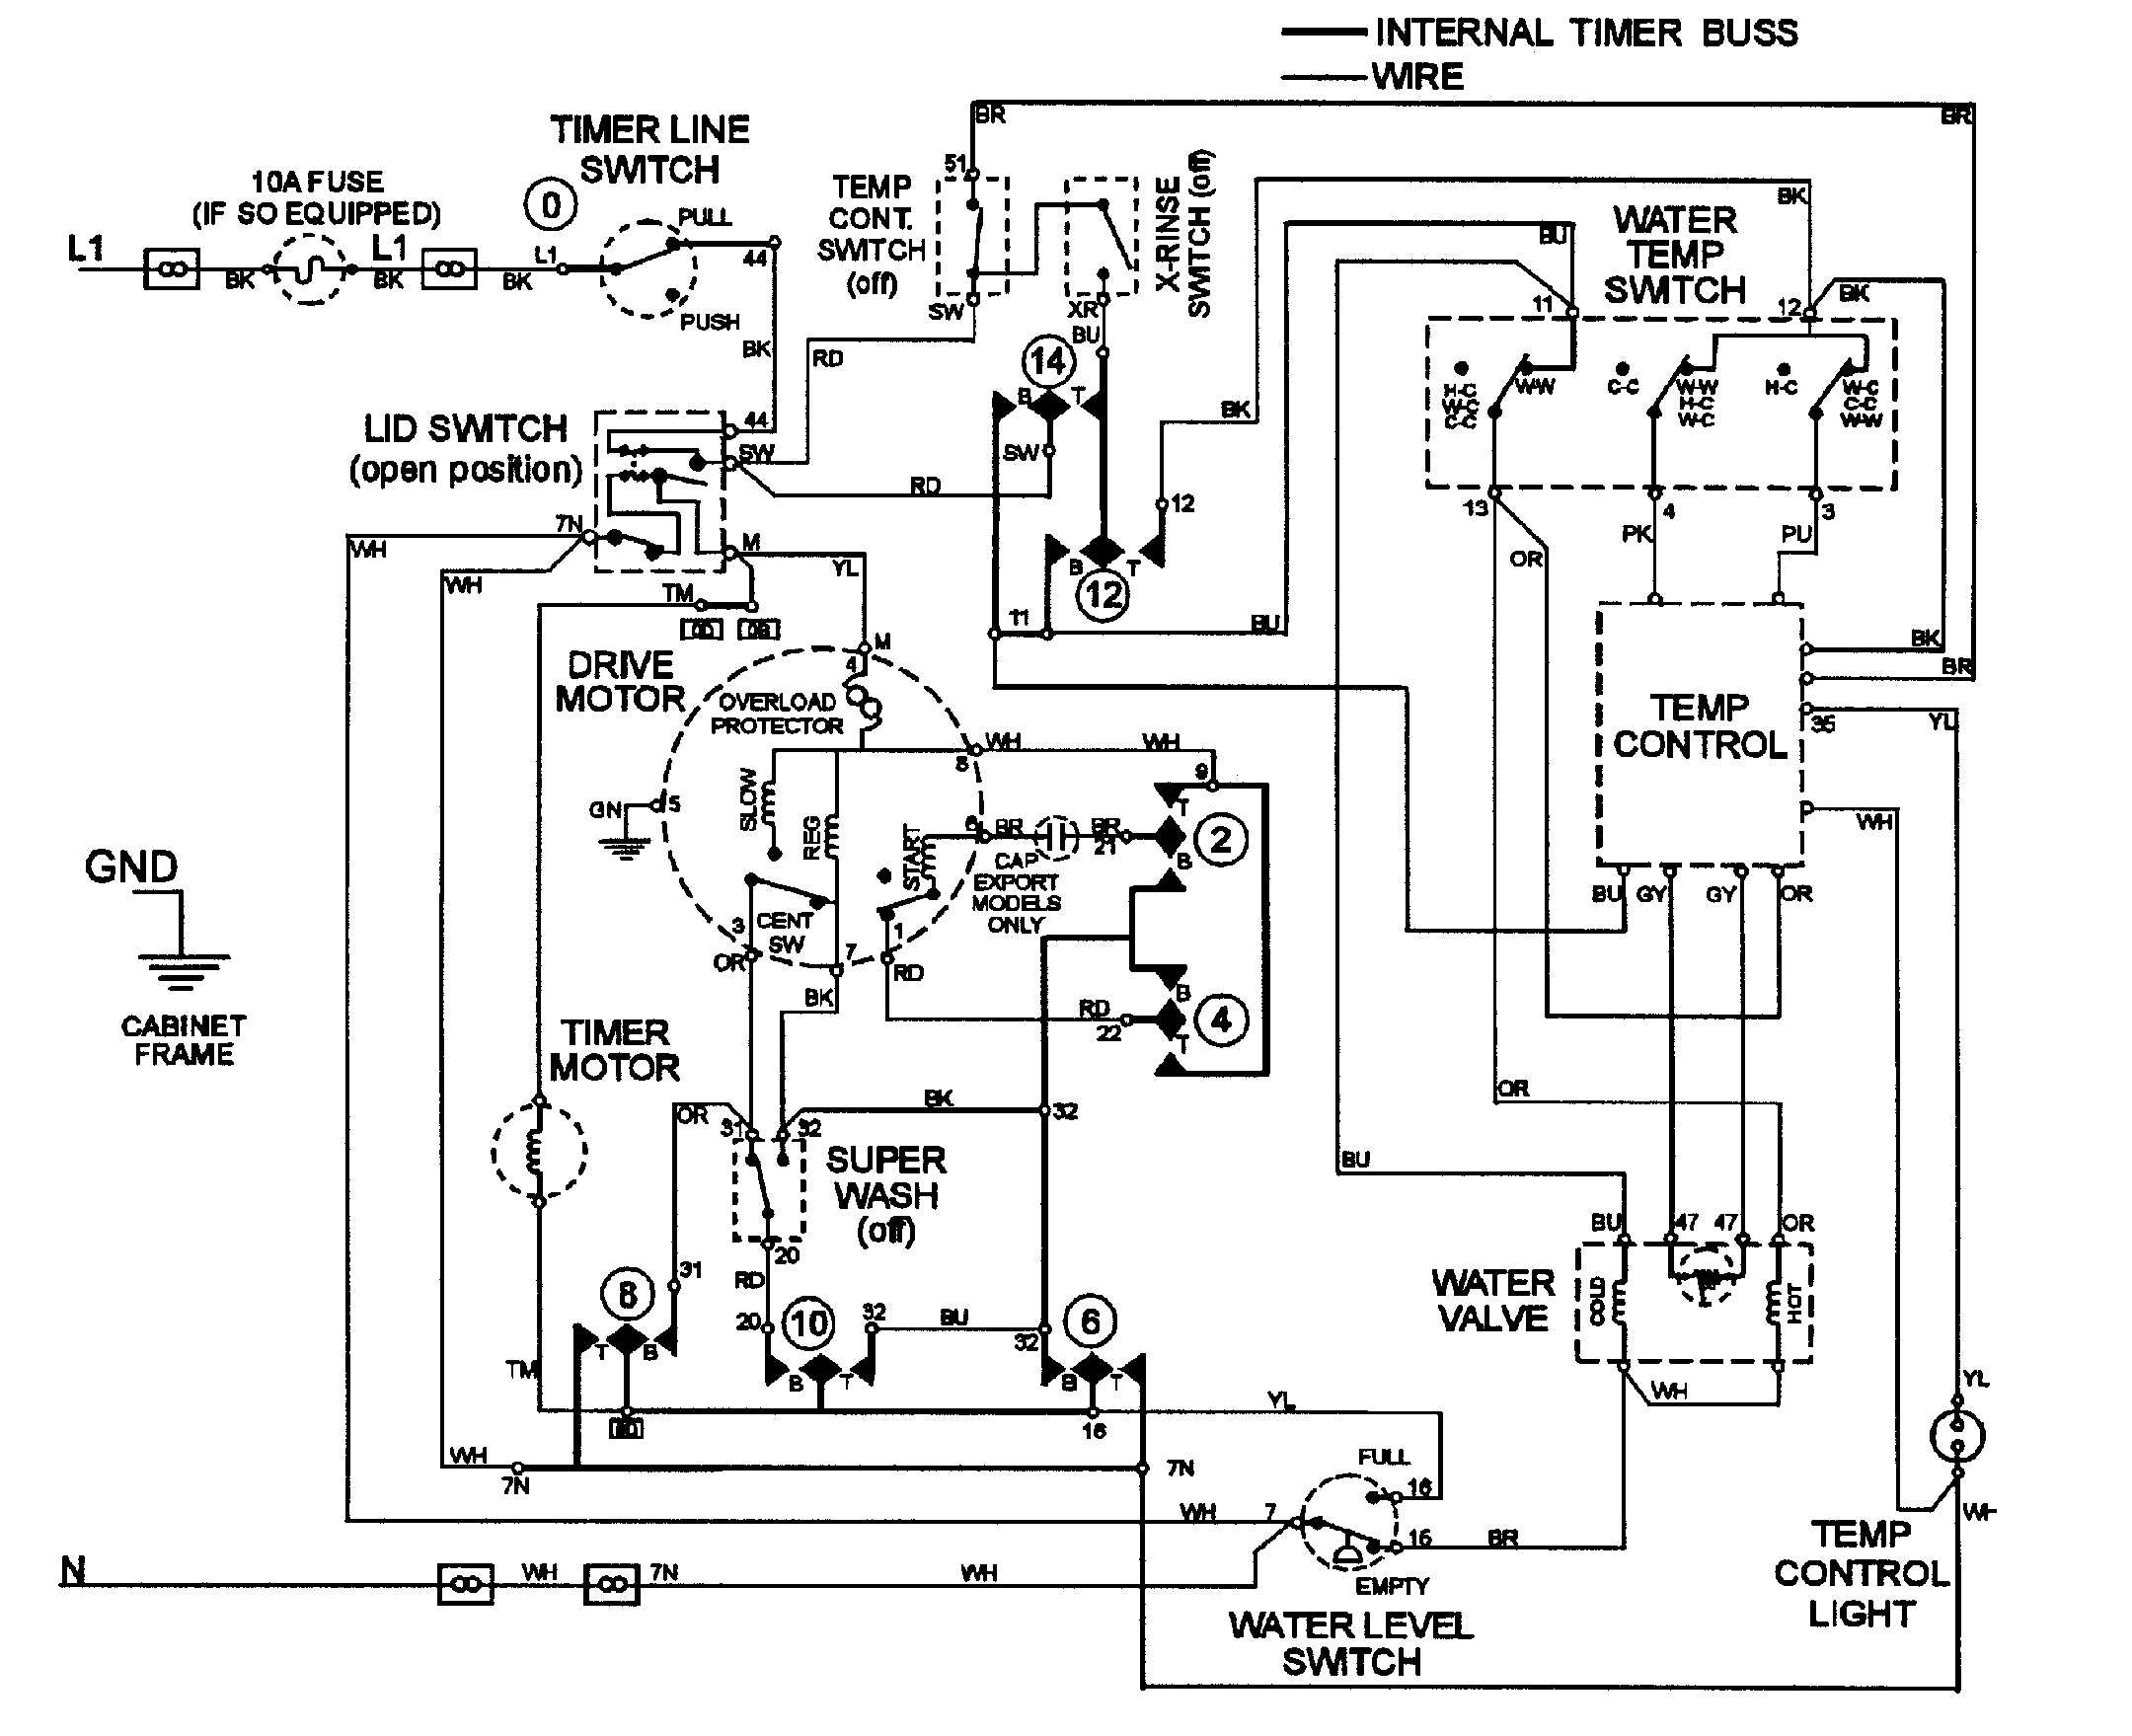 kenmore washer wiring diagram Collection-M 13-t